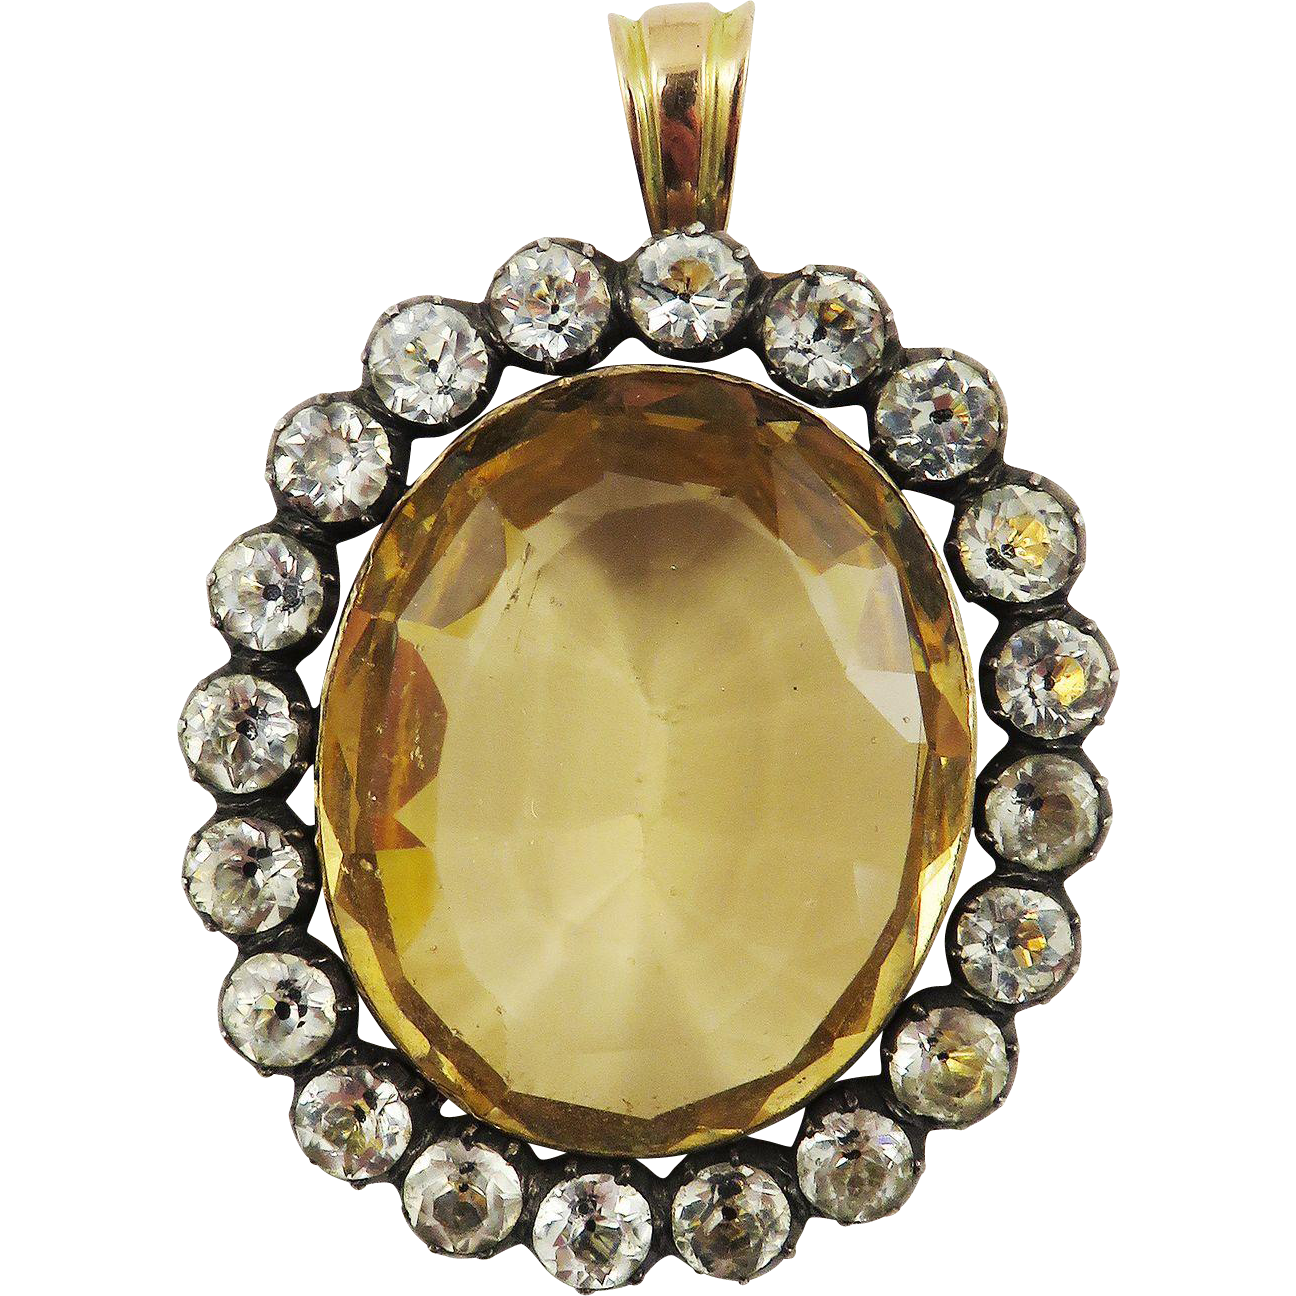 FABULOUS Georgian 24.45 Ct. Citrine/Paste/Sterling/12k Pendant, c.1810!